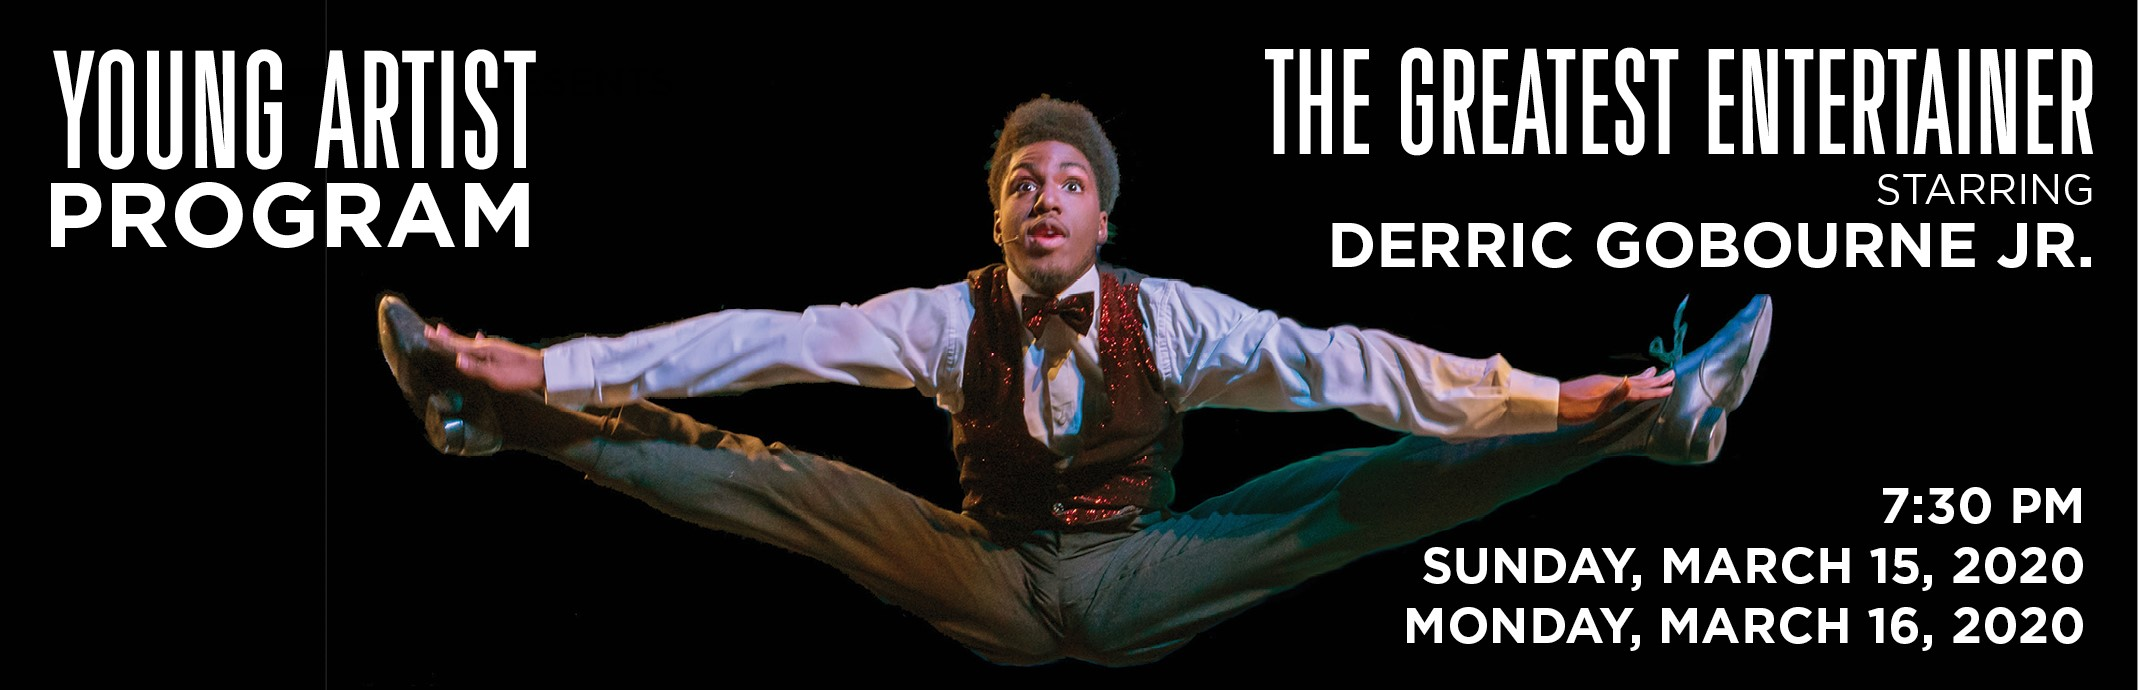 Young Artist Program: The Greatest Entertainer Starring Derric Gobourne Jr. 7:30pm Sunday, March 15 and Monday, March 16, 2020